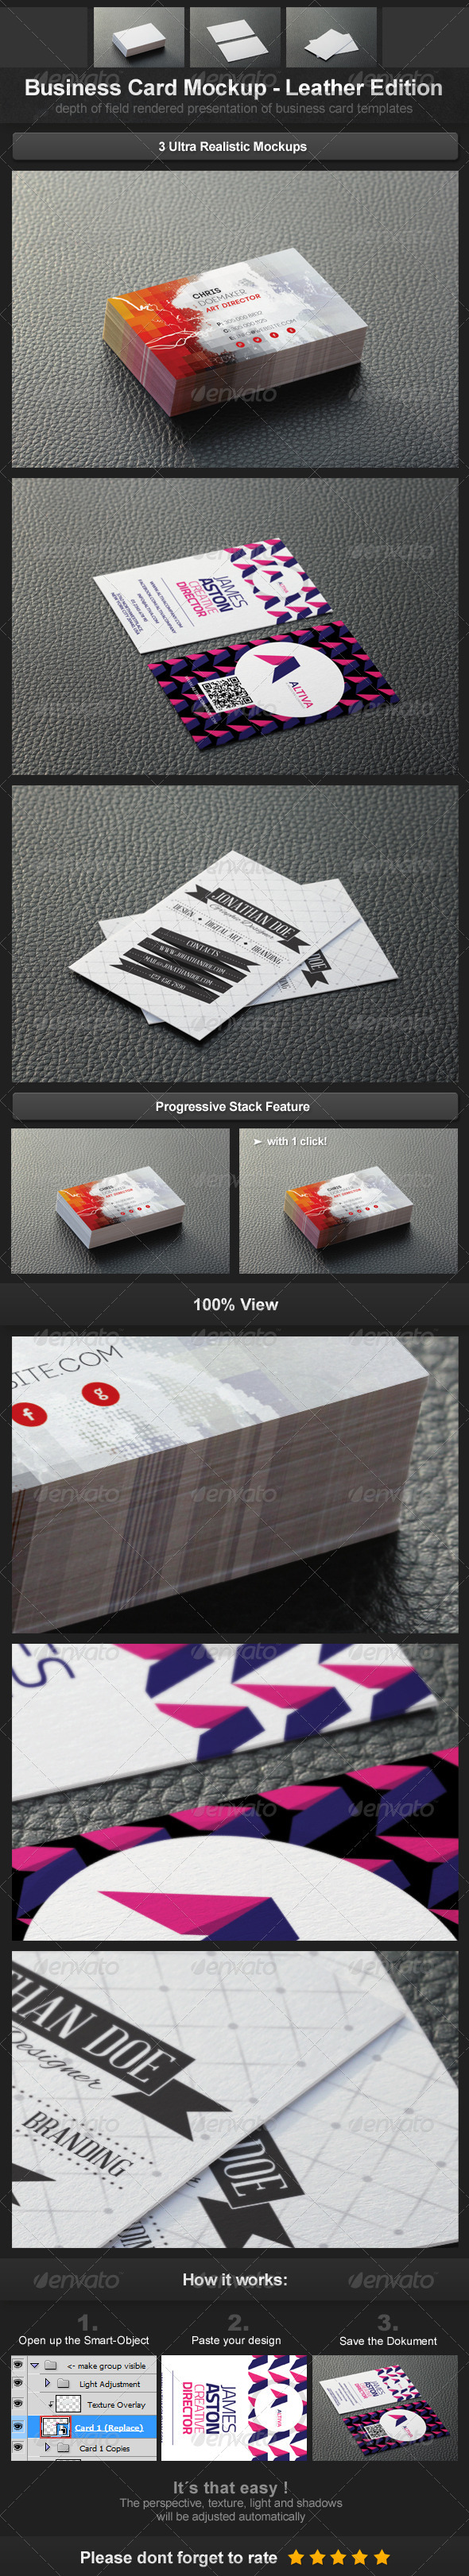 GraphicRiver Business Card Mockup Leather Edition 3730808